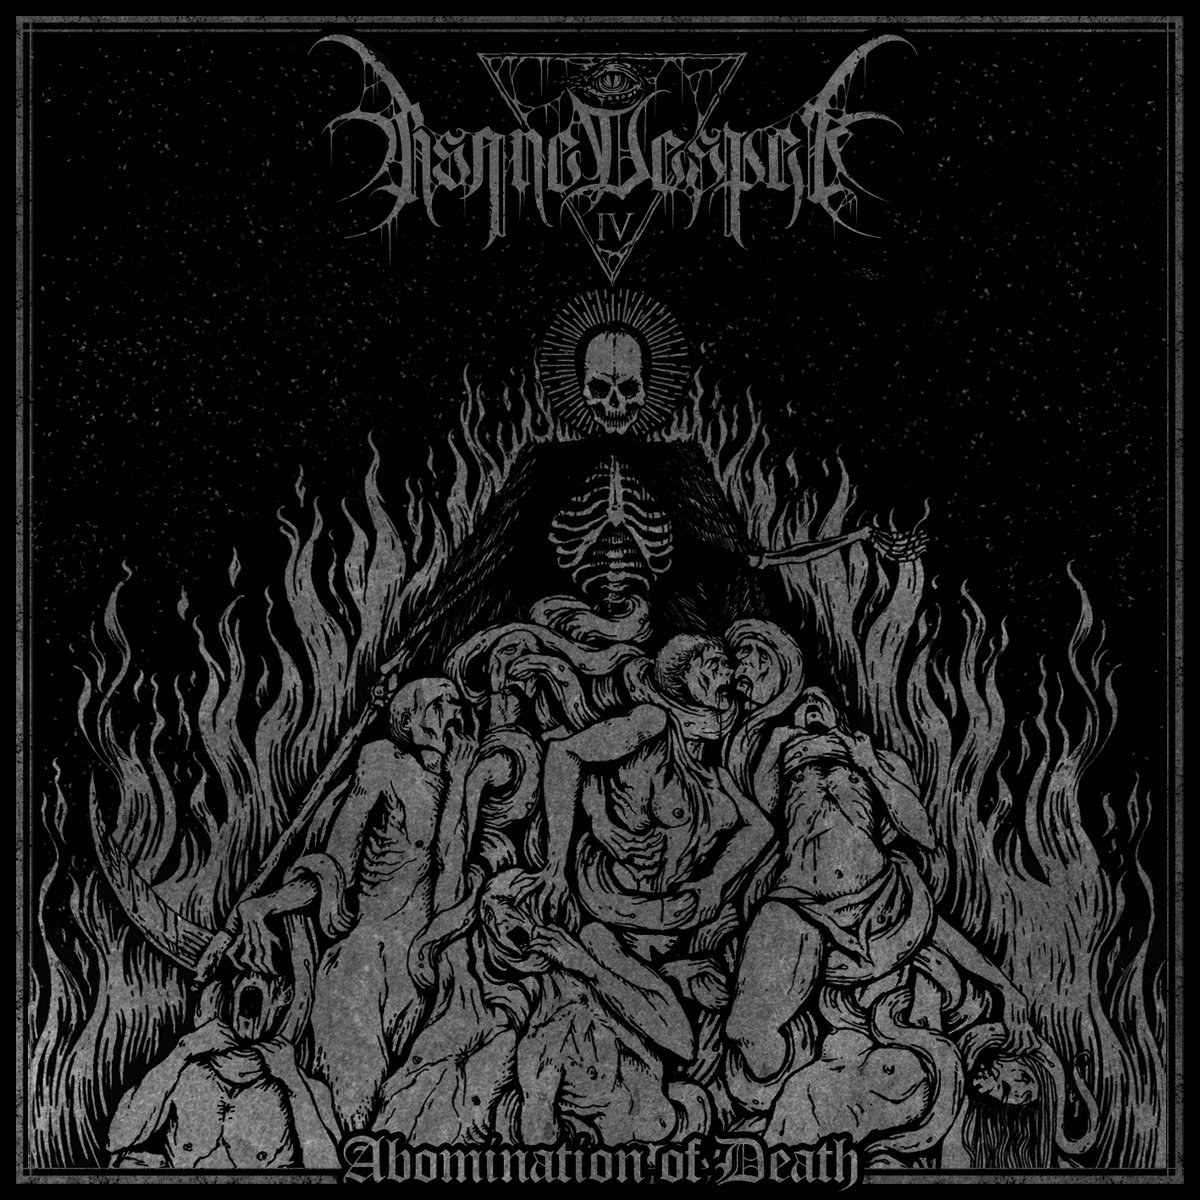 Review for Insane Vesper - Abomination of Death